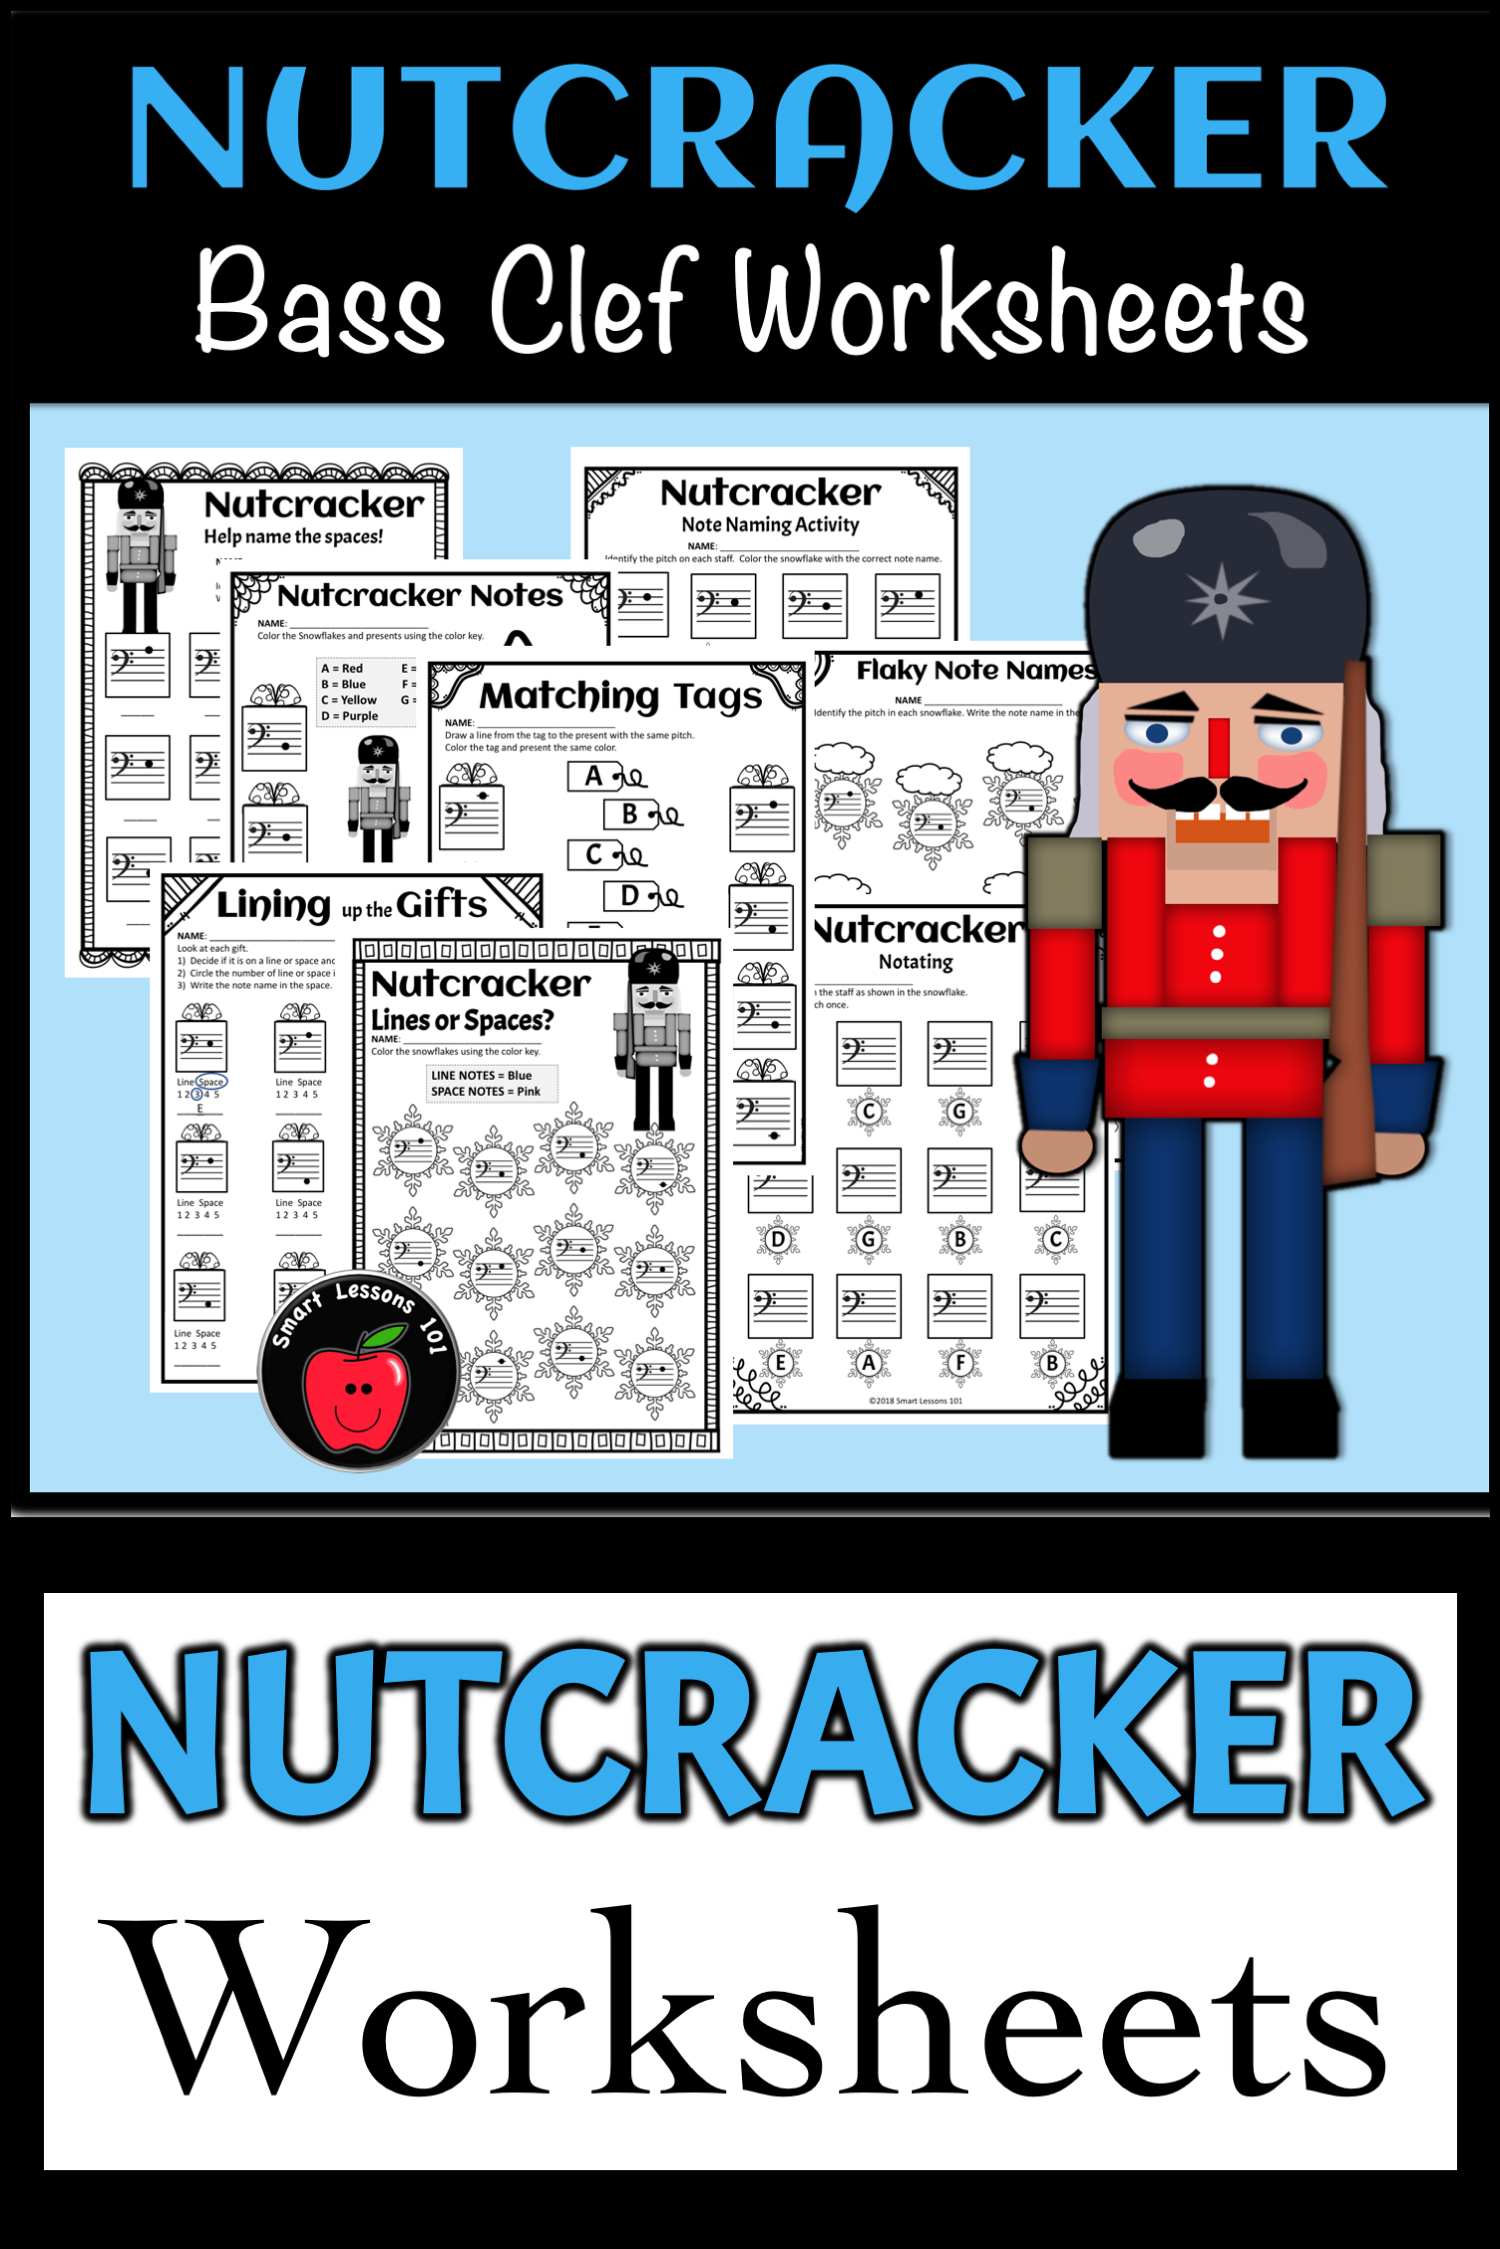 Nutcracker Worksheets Nutcracker Note Activities Treble